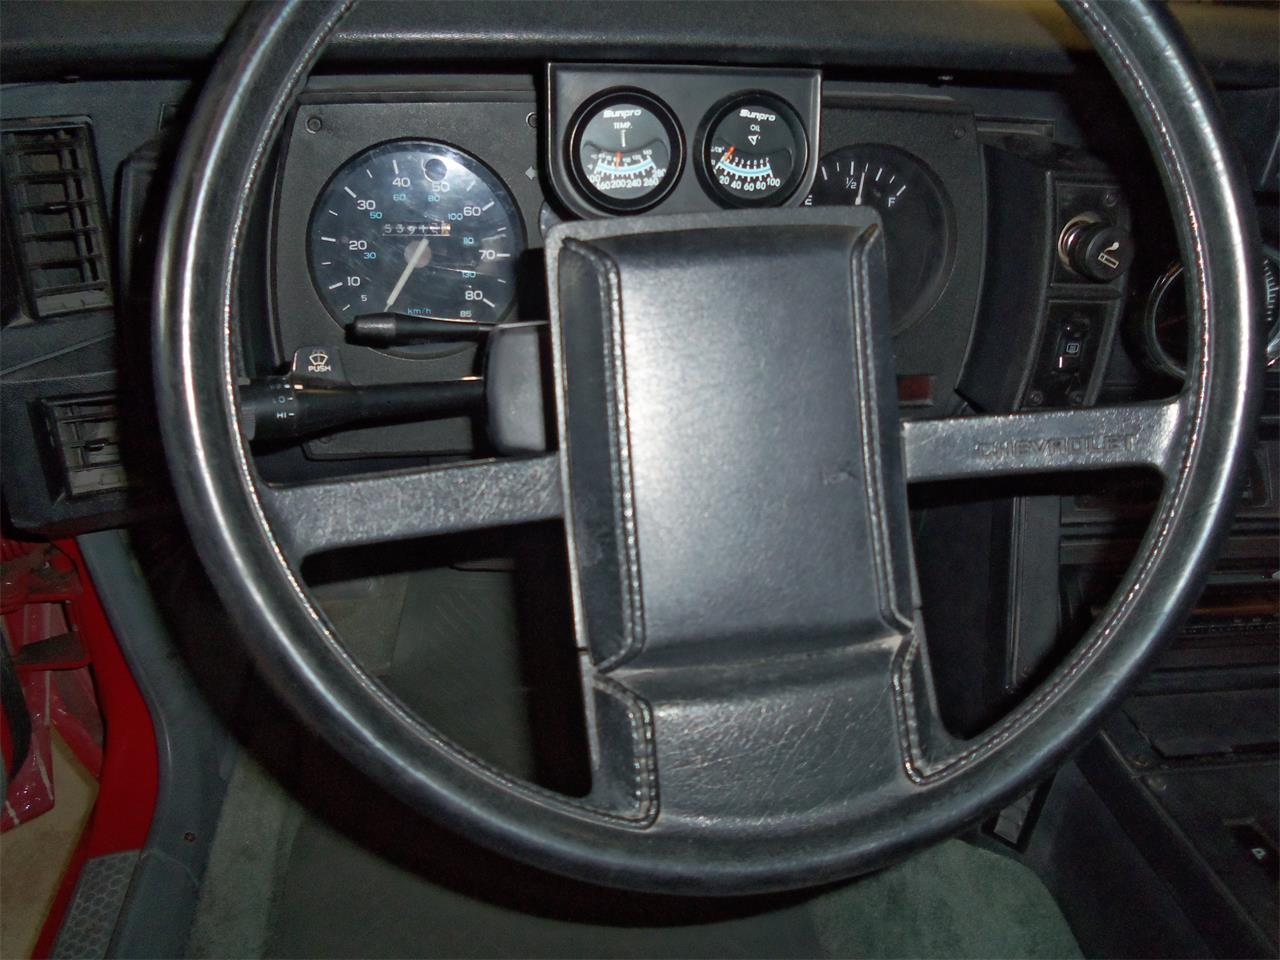 Large Picture of '87 Camaro located in Wisconsin - $7,495.00 Offered by Top Notch Pre-Owned Vehicles - N4OS